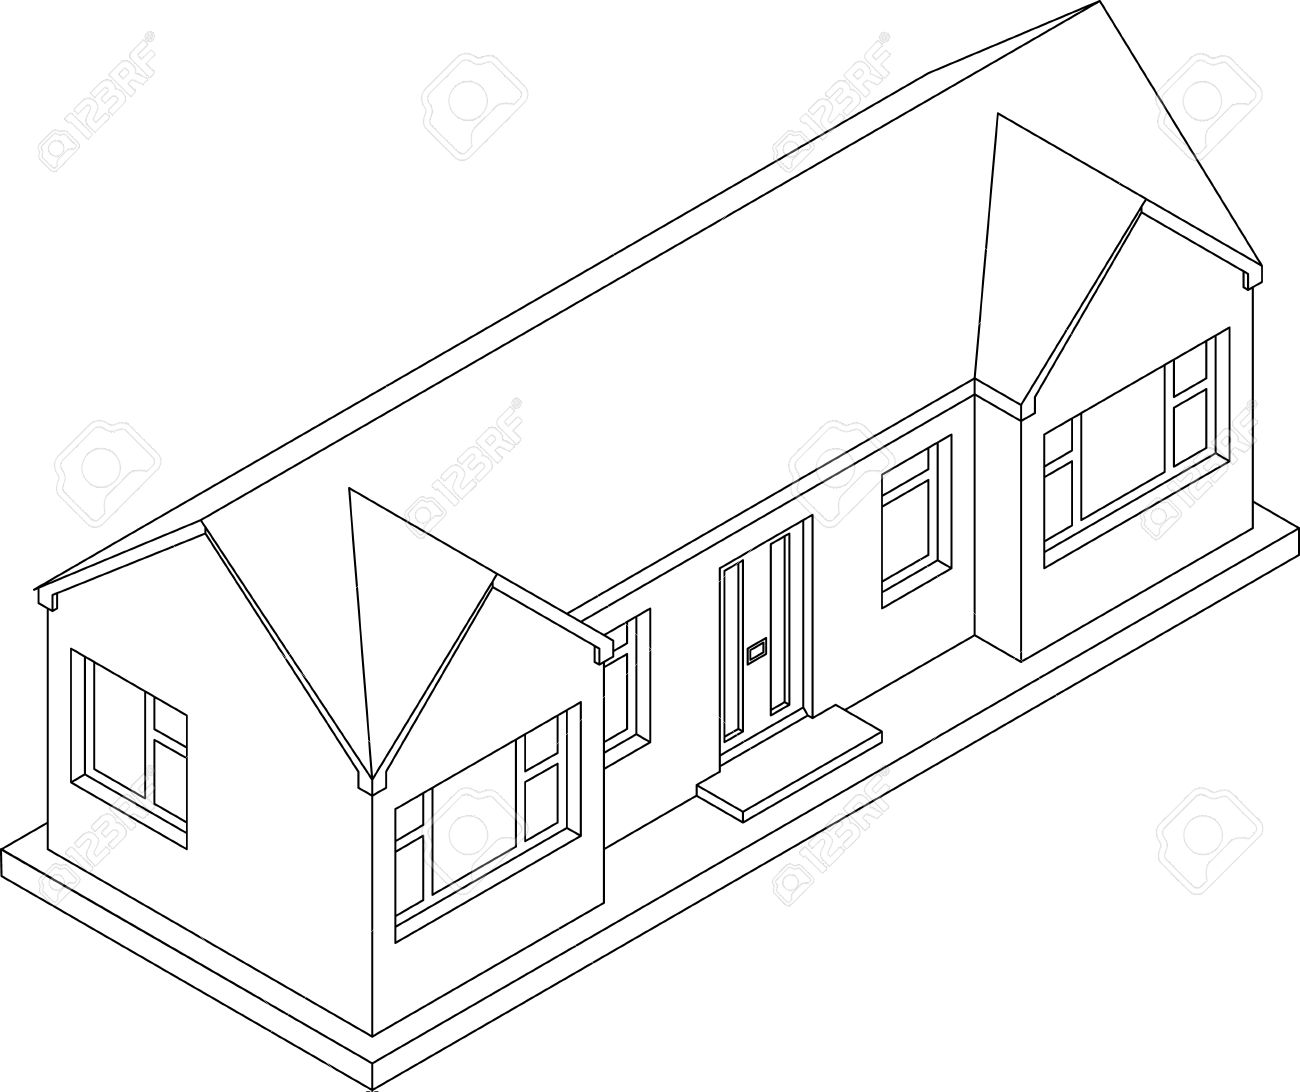 Marvelous 3d Isometric Line Drawing Of A Double Fronted Single Story House Bungalow  Stock Vector   23857959